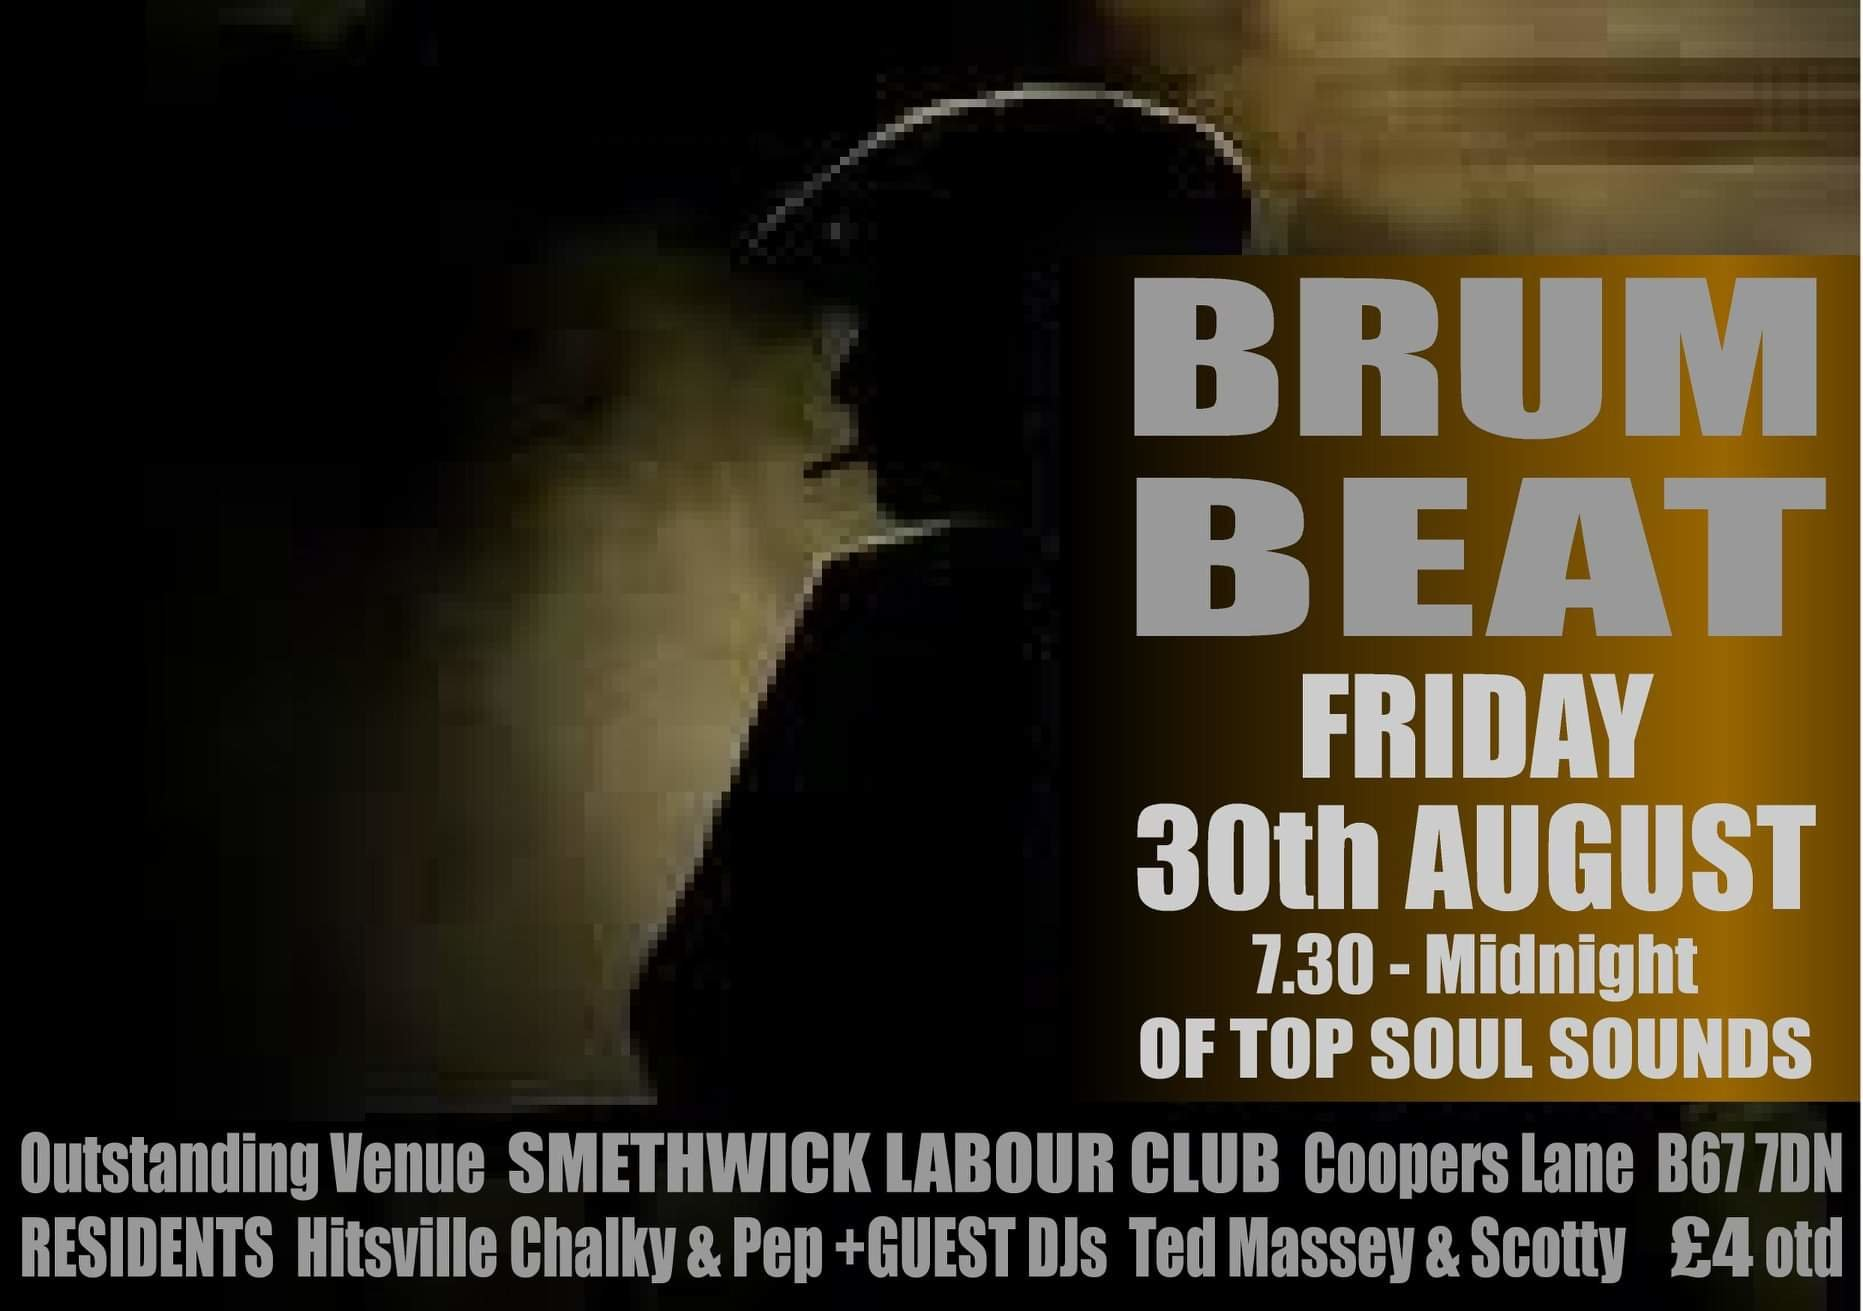 Brum Beat The Sandwell Soul Session flyer